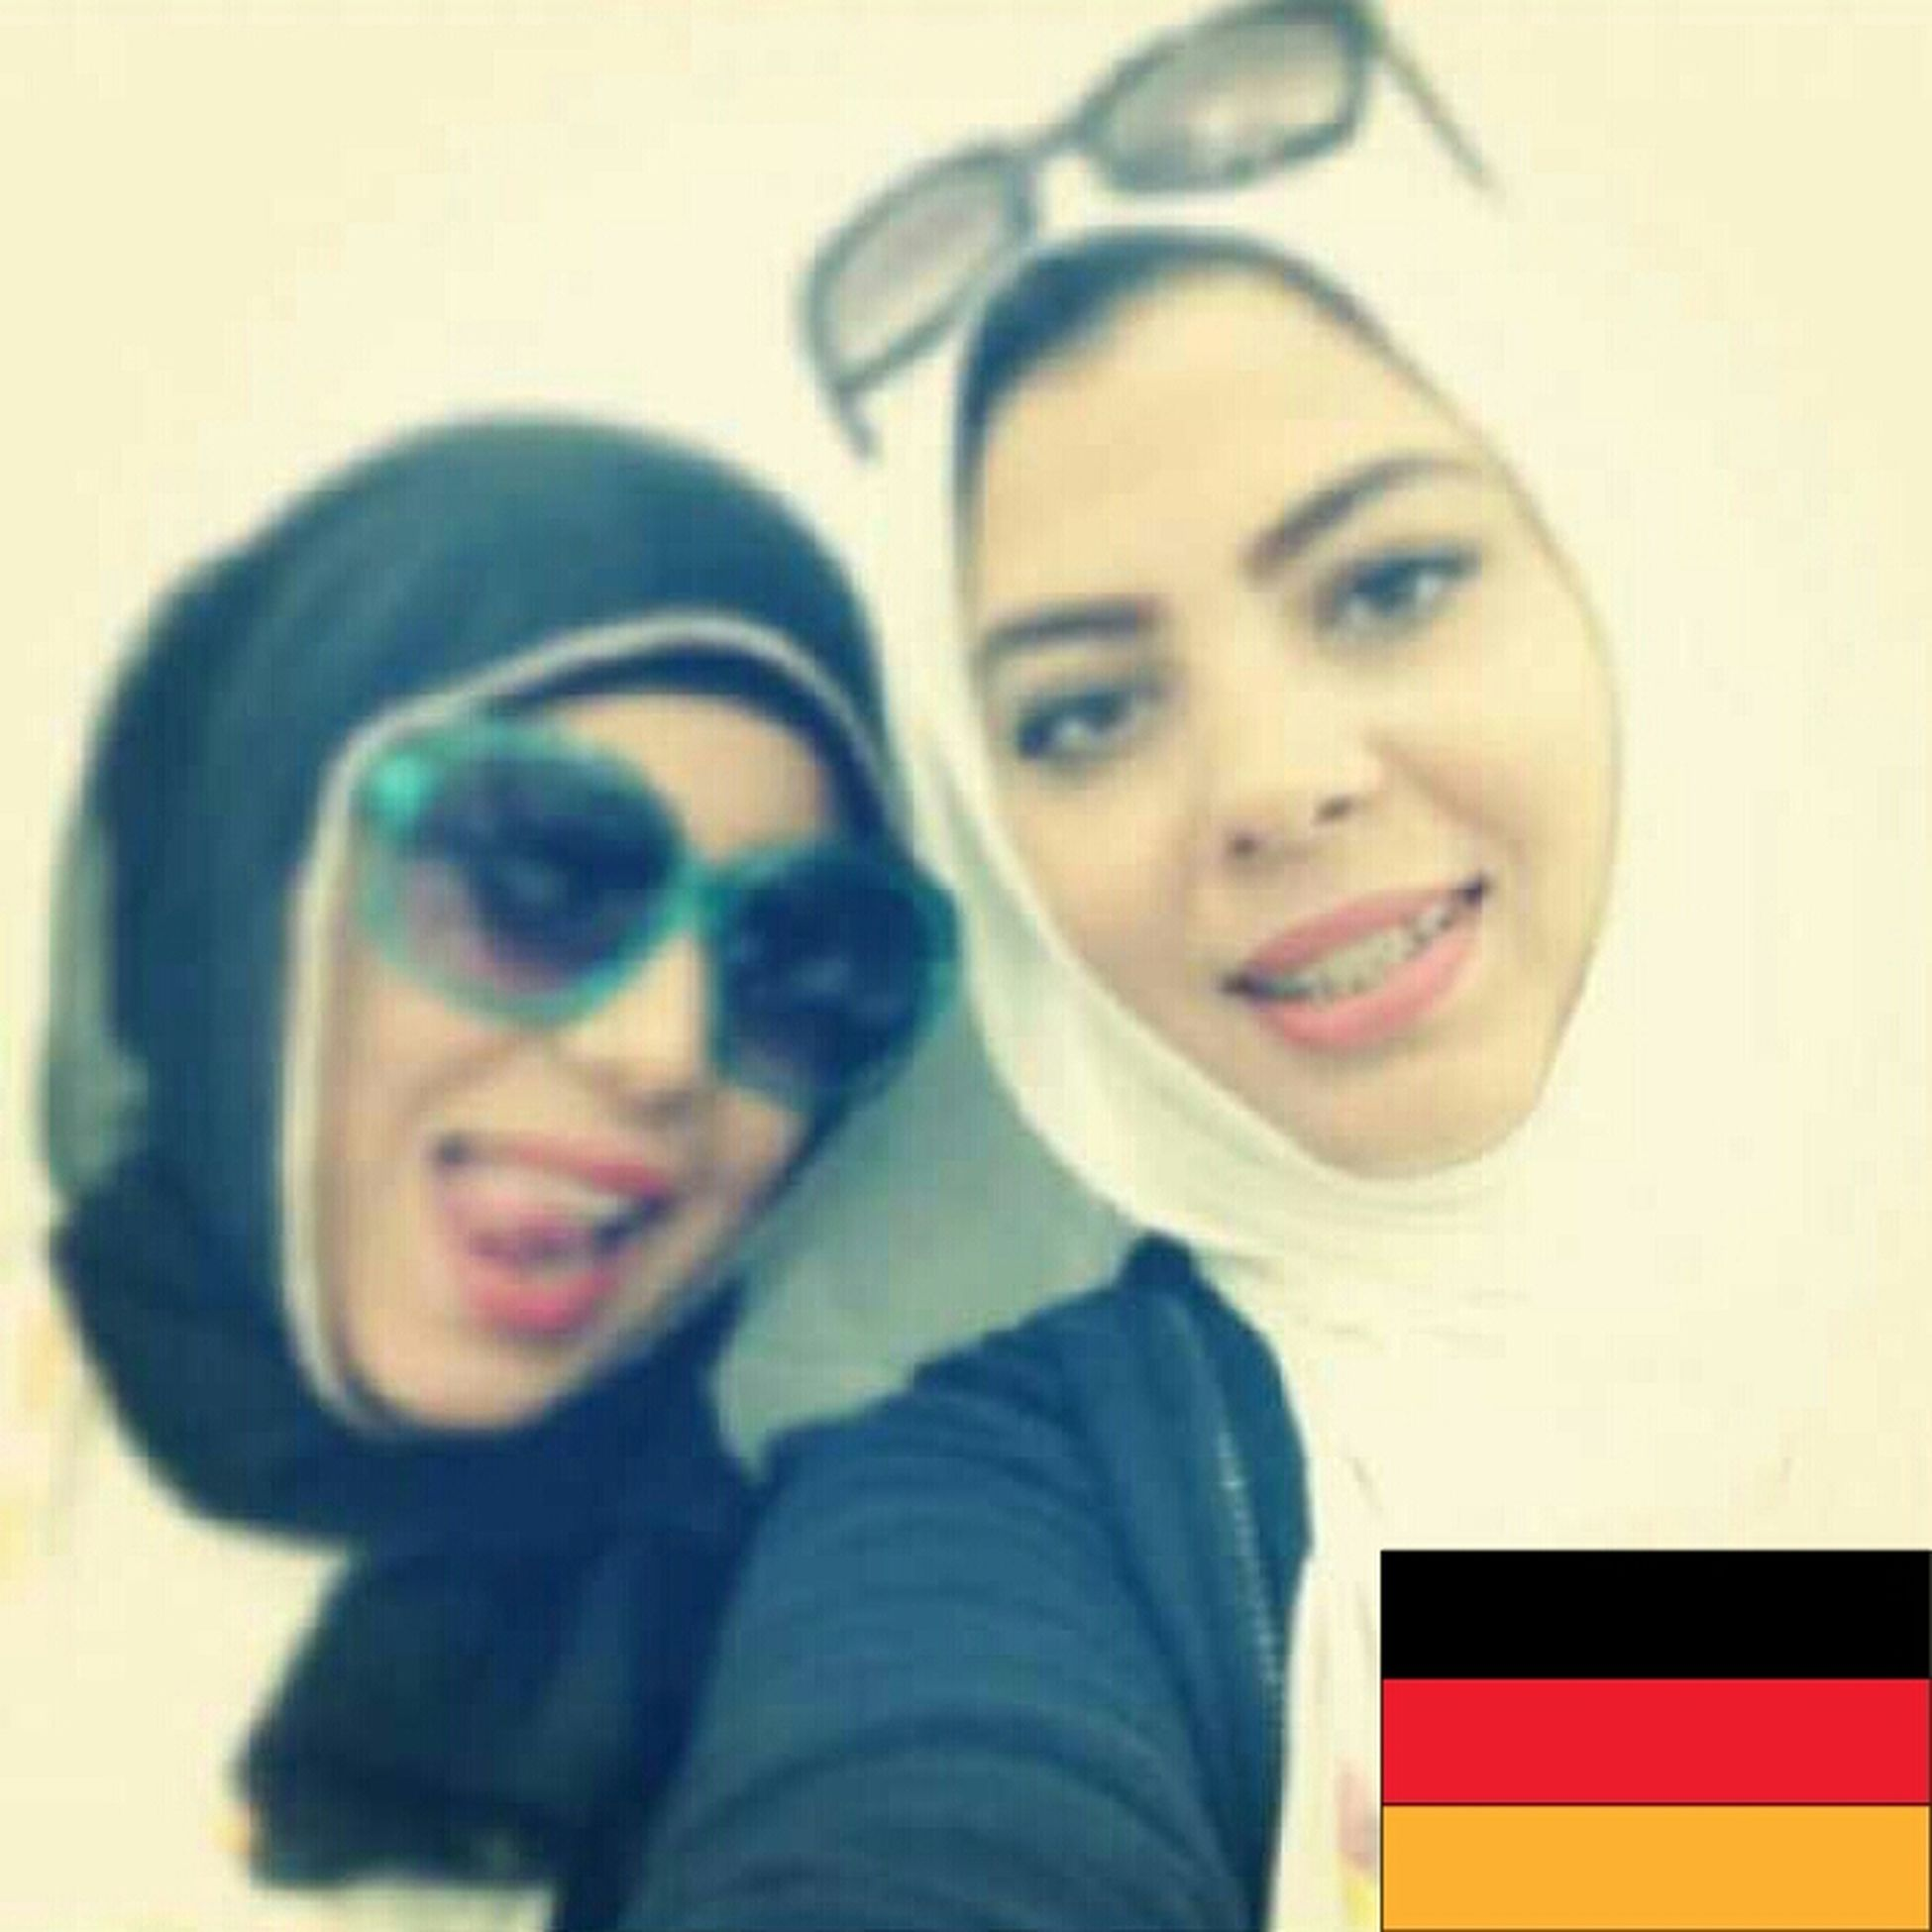 Support Germany world cup 2014 with friends